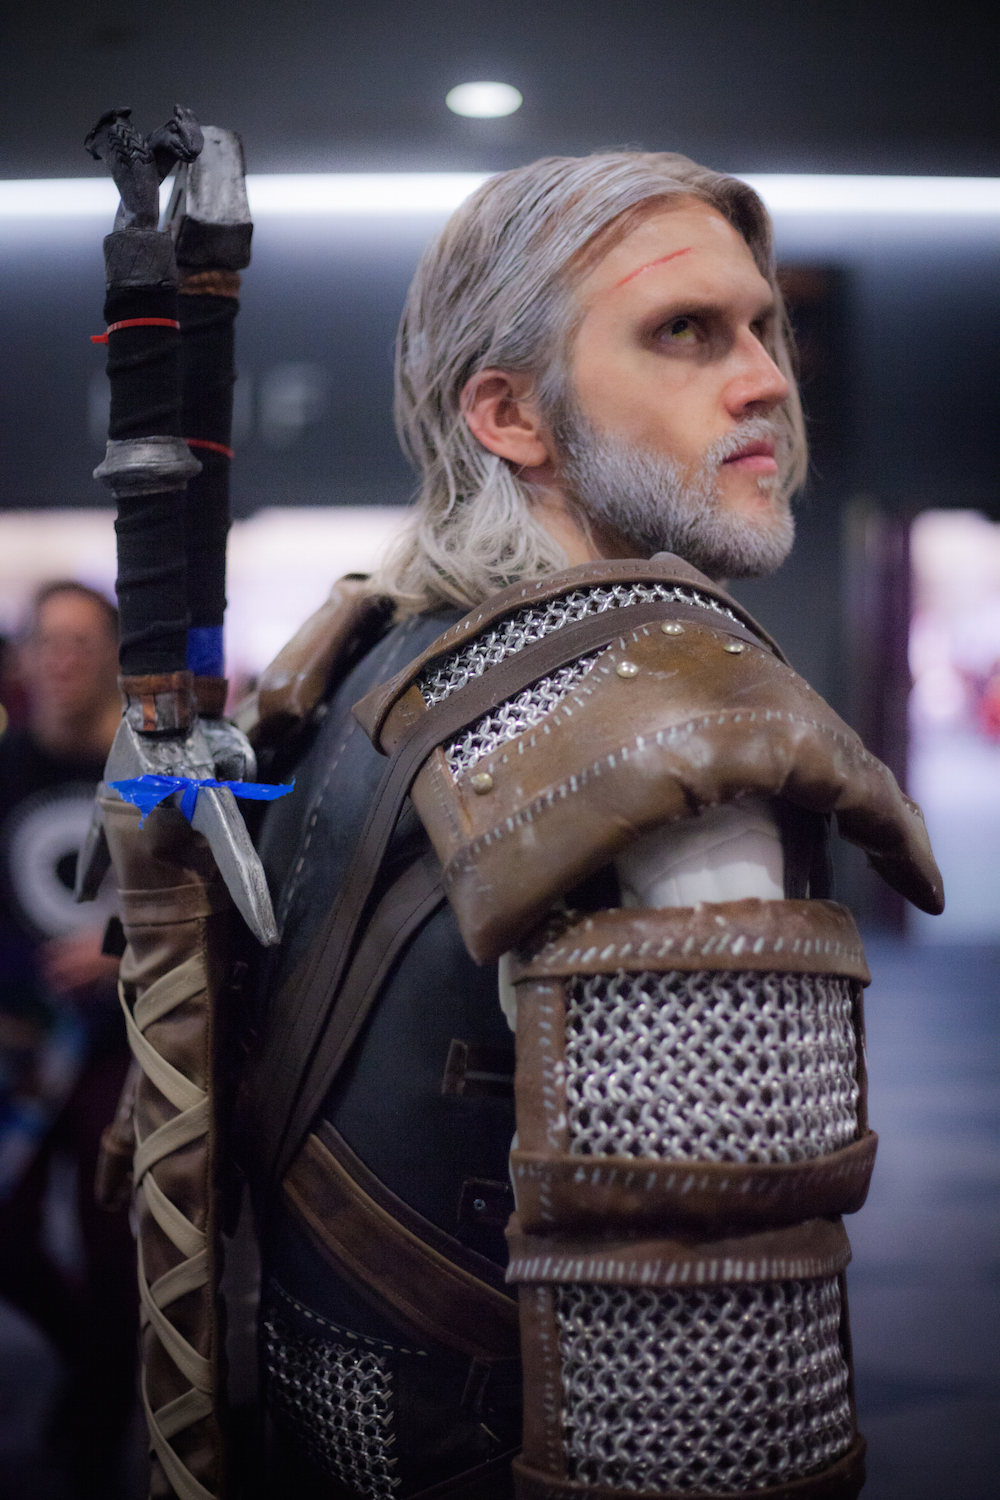 Geralt from The Witcher cosplay photographs